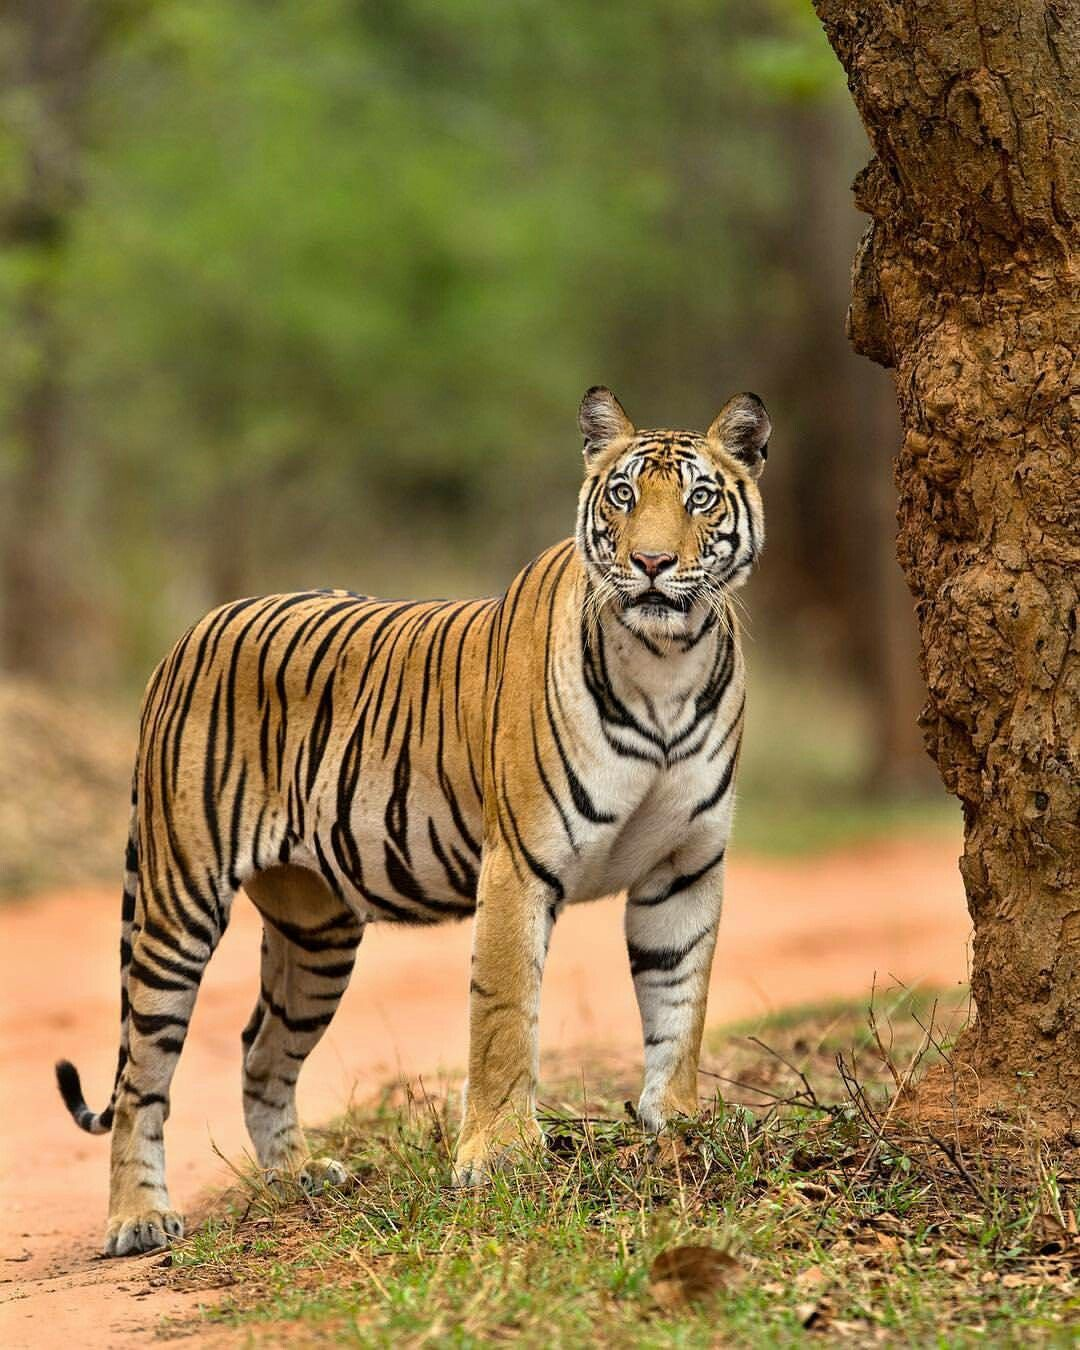 Pin by appa jadhav on Indian TIGER (With images) Wild